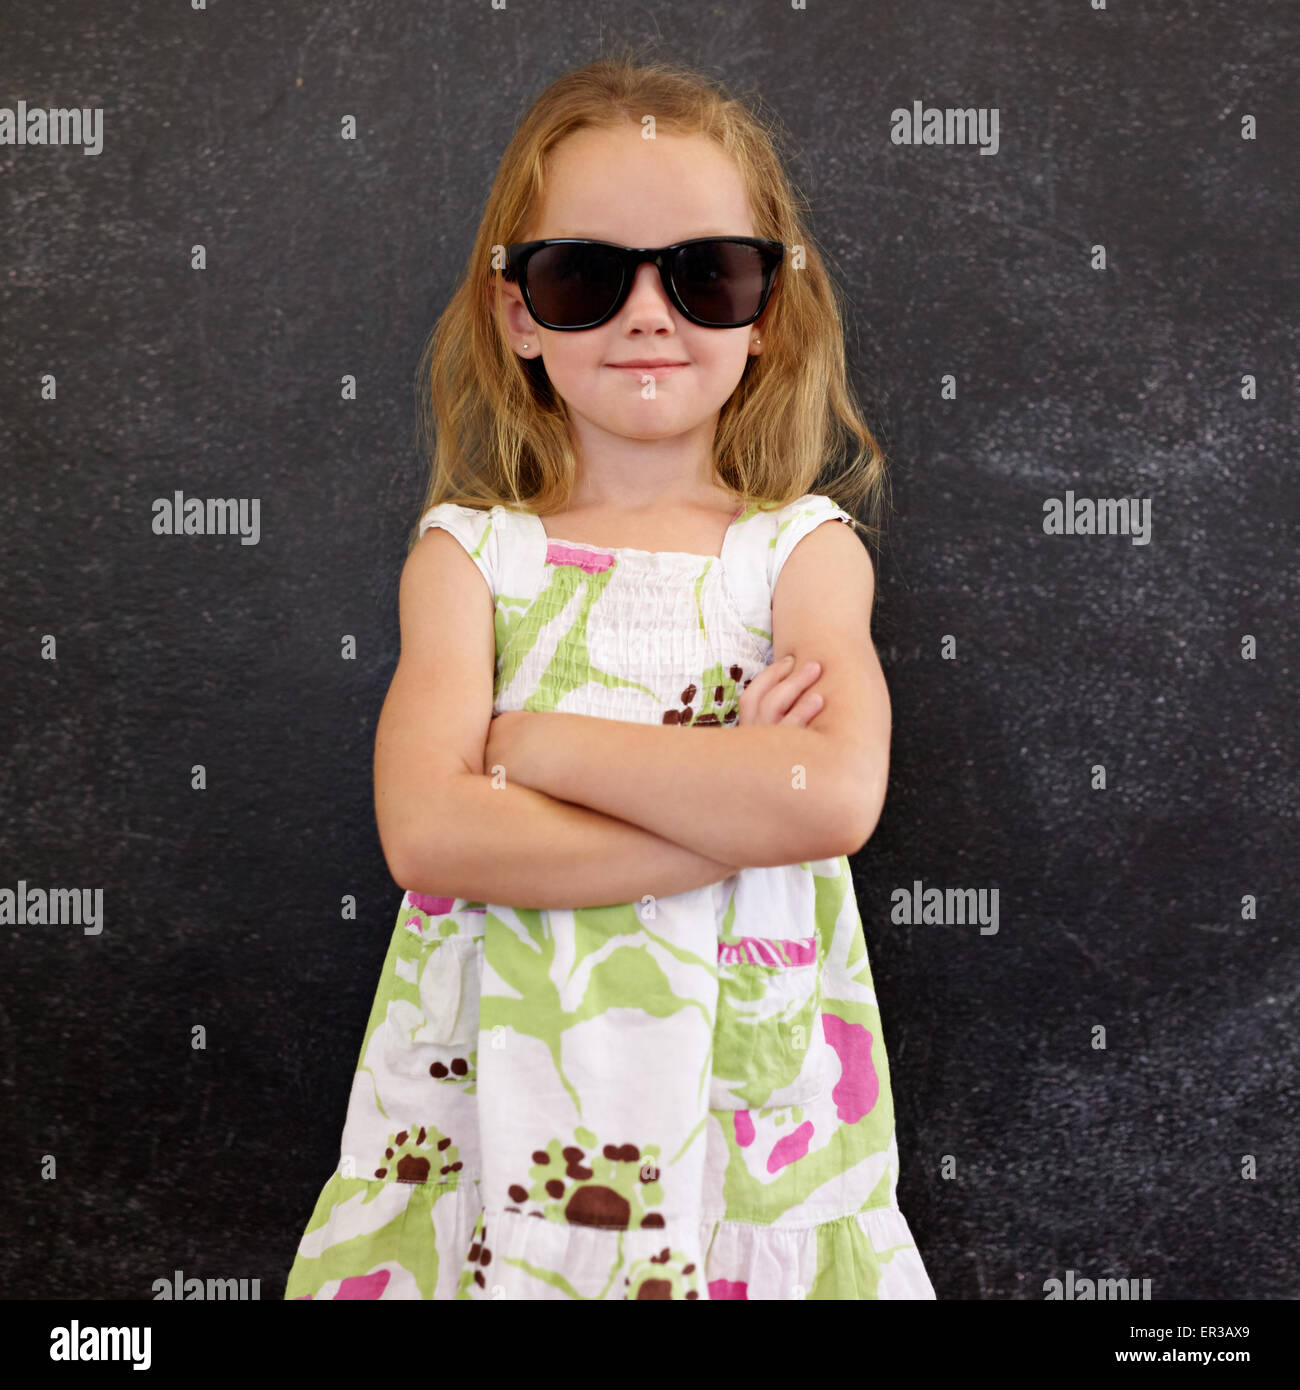 Portrait of cute little girl wearing sunglasses against a black wall. Young girl standing in shades with her hands - Stock Image